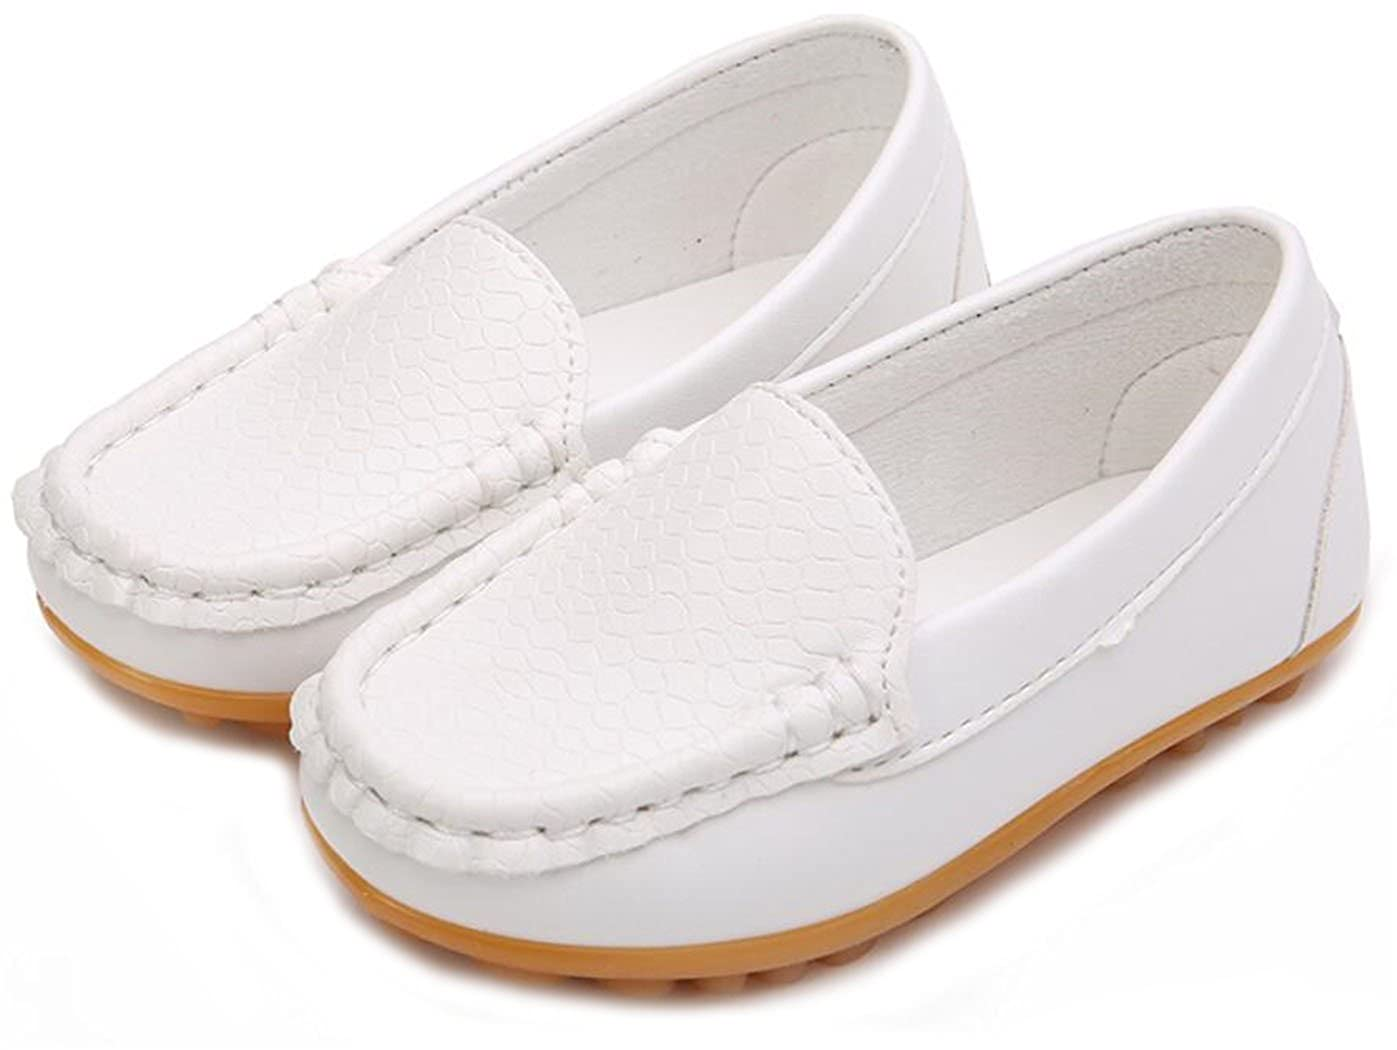 PPXID Boys Girls Soft Footwear Slip-On Loafers Oxford Shoes F0471